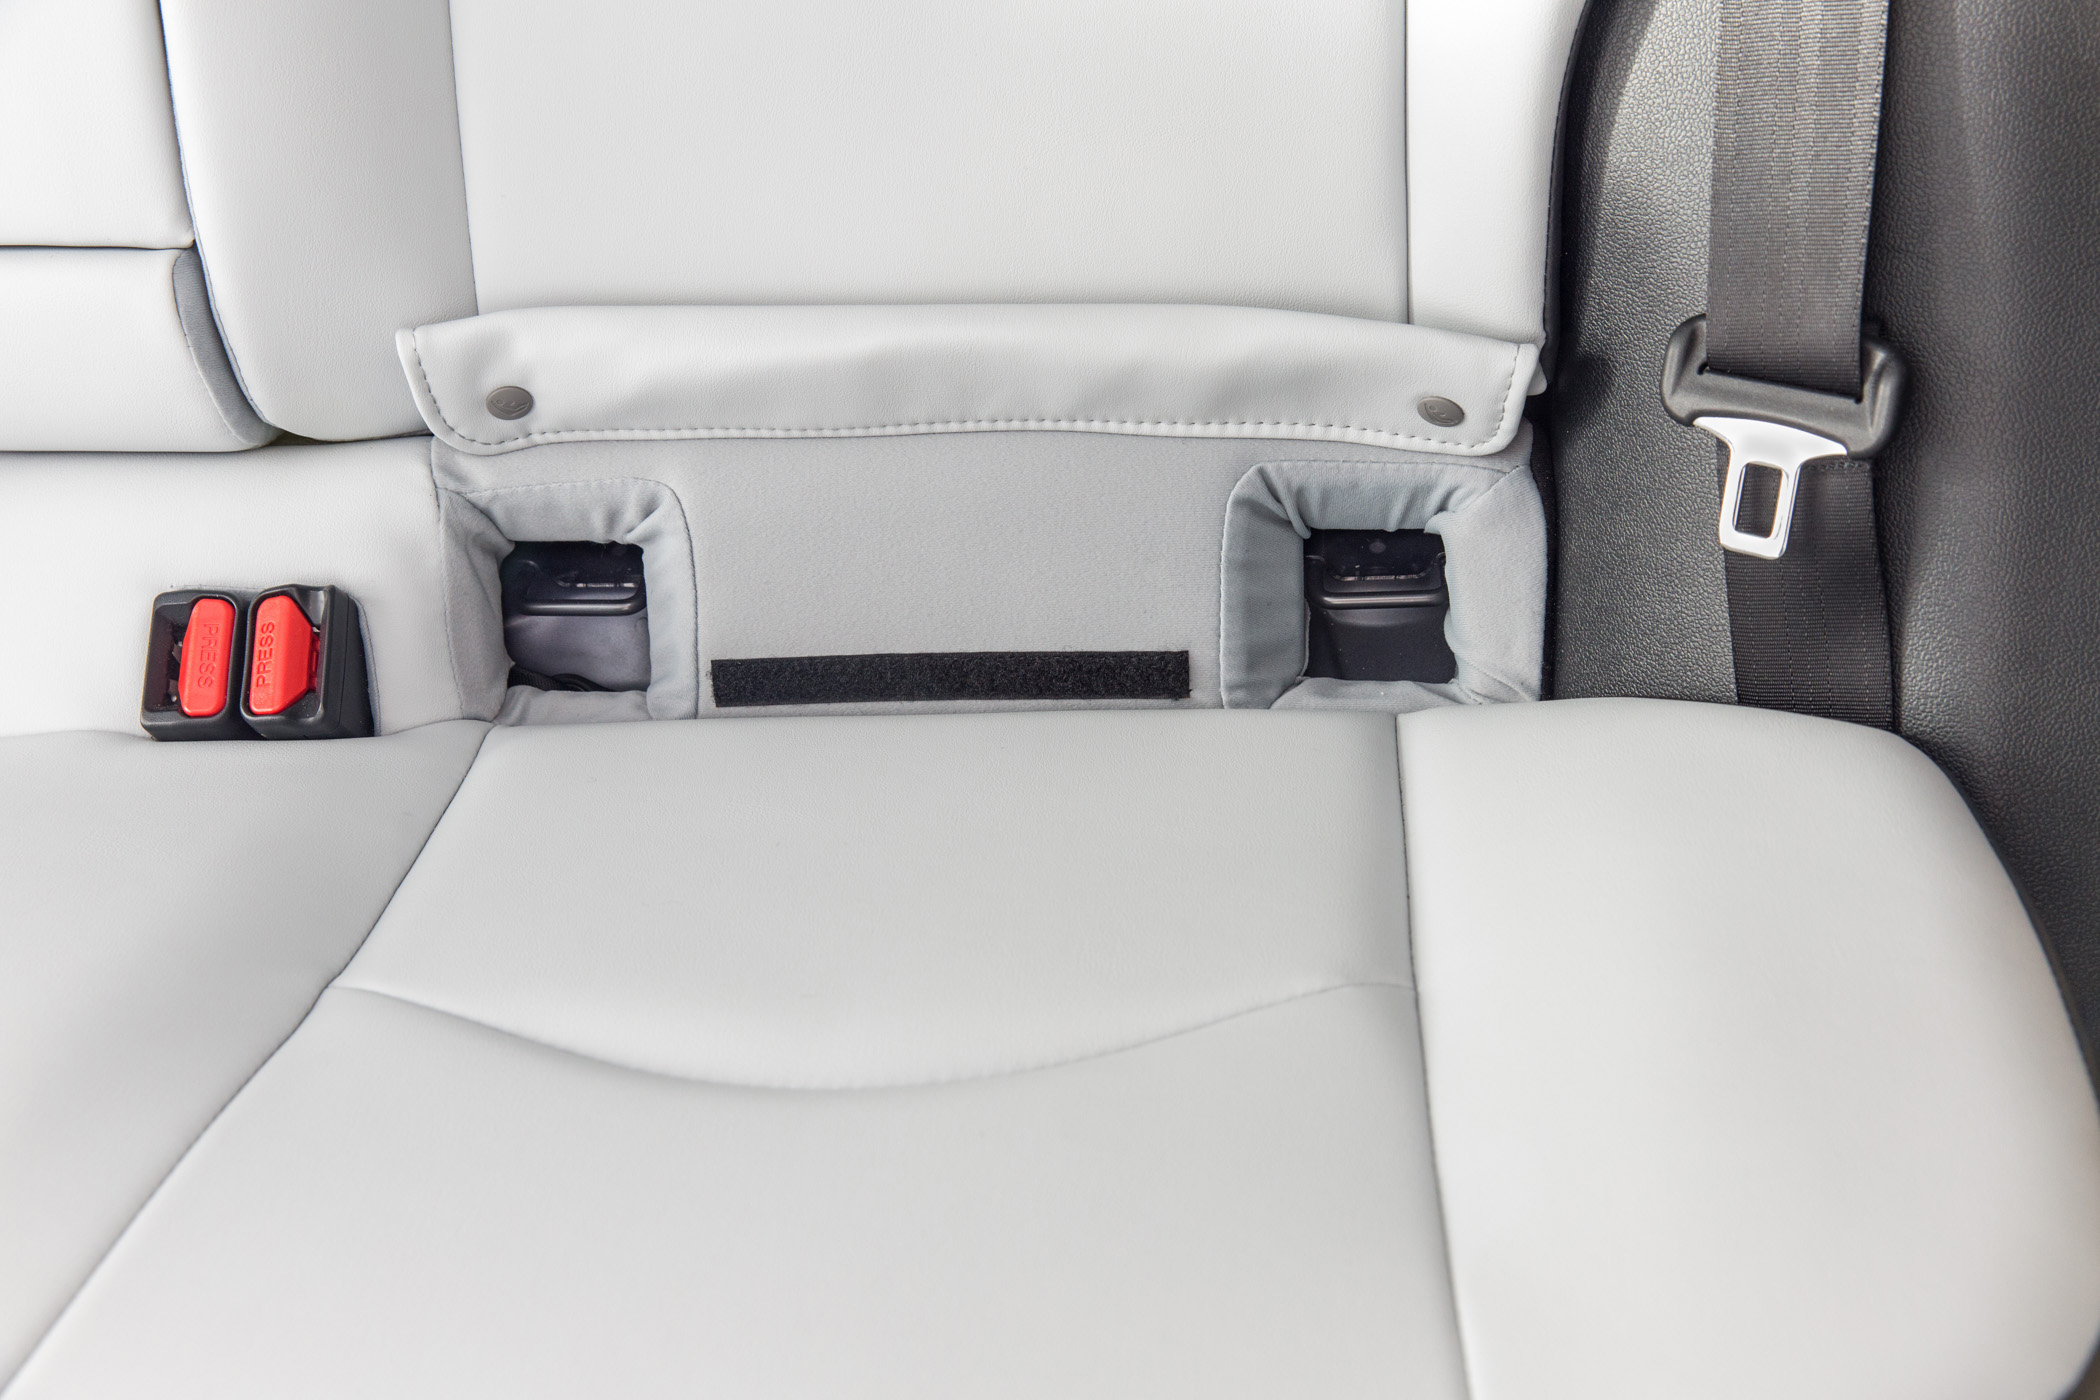 Toyota Engineers Easier Access for Child Safety Seat Mounts © Toyota Motor Corporation